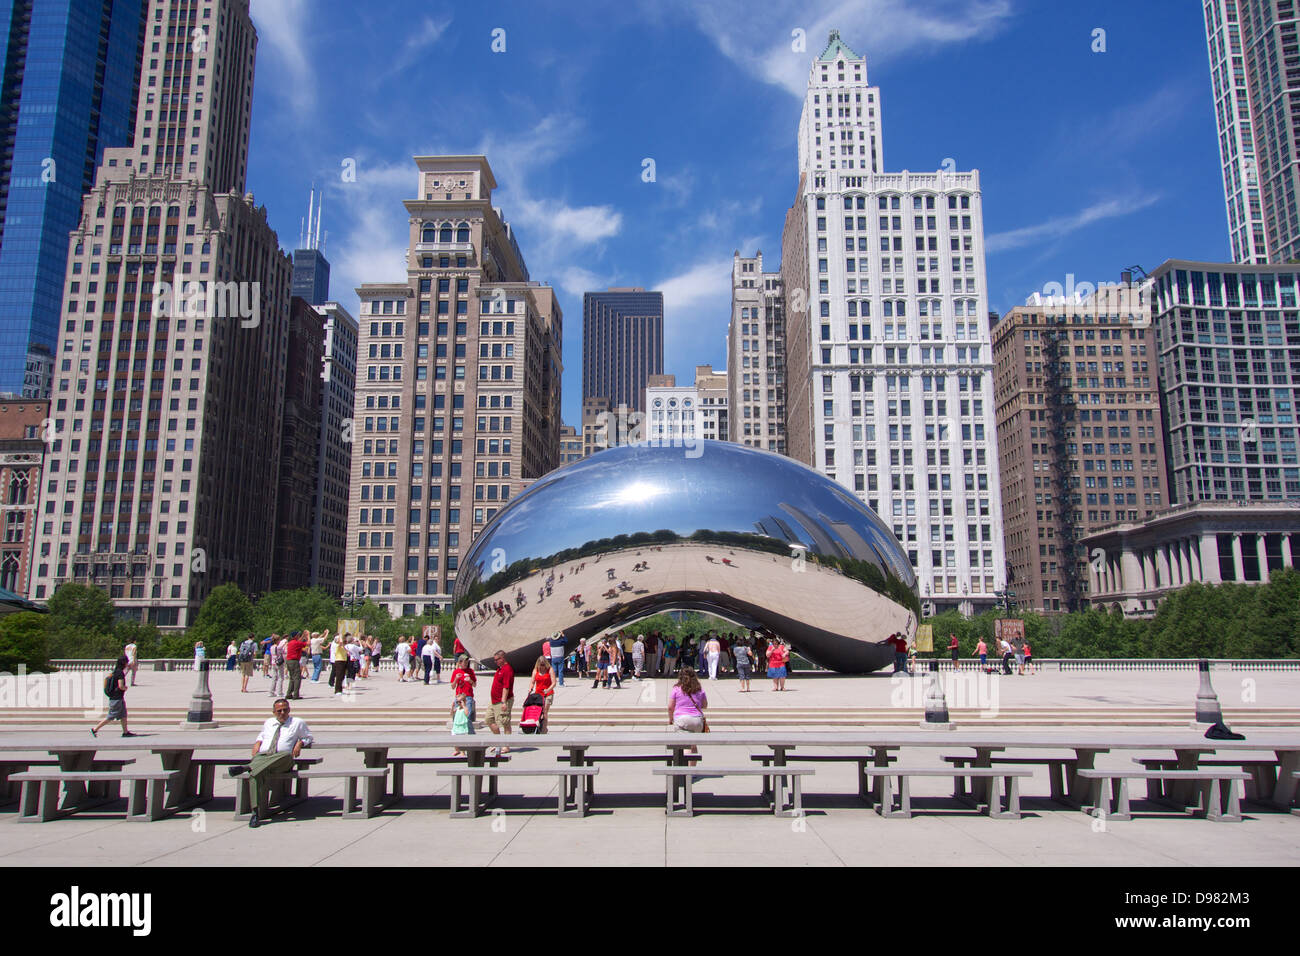 Cloud Gate by Anish Kapoor, also known as 'The Bean.' Millennium Park, Chicago. - Stock Image